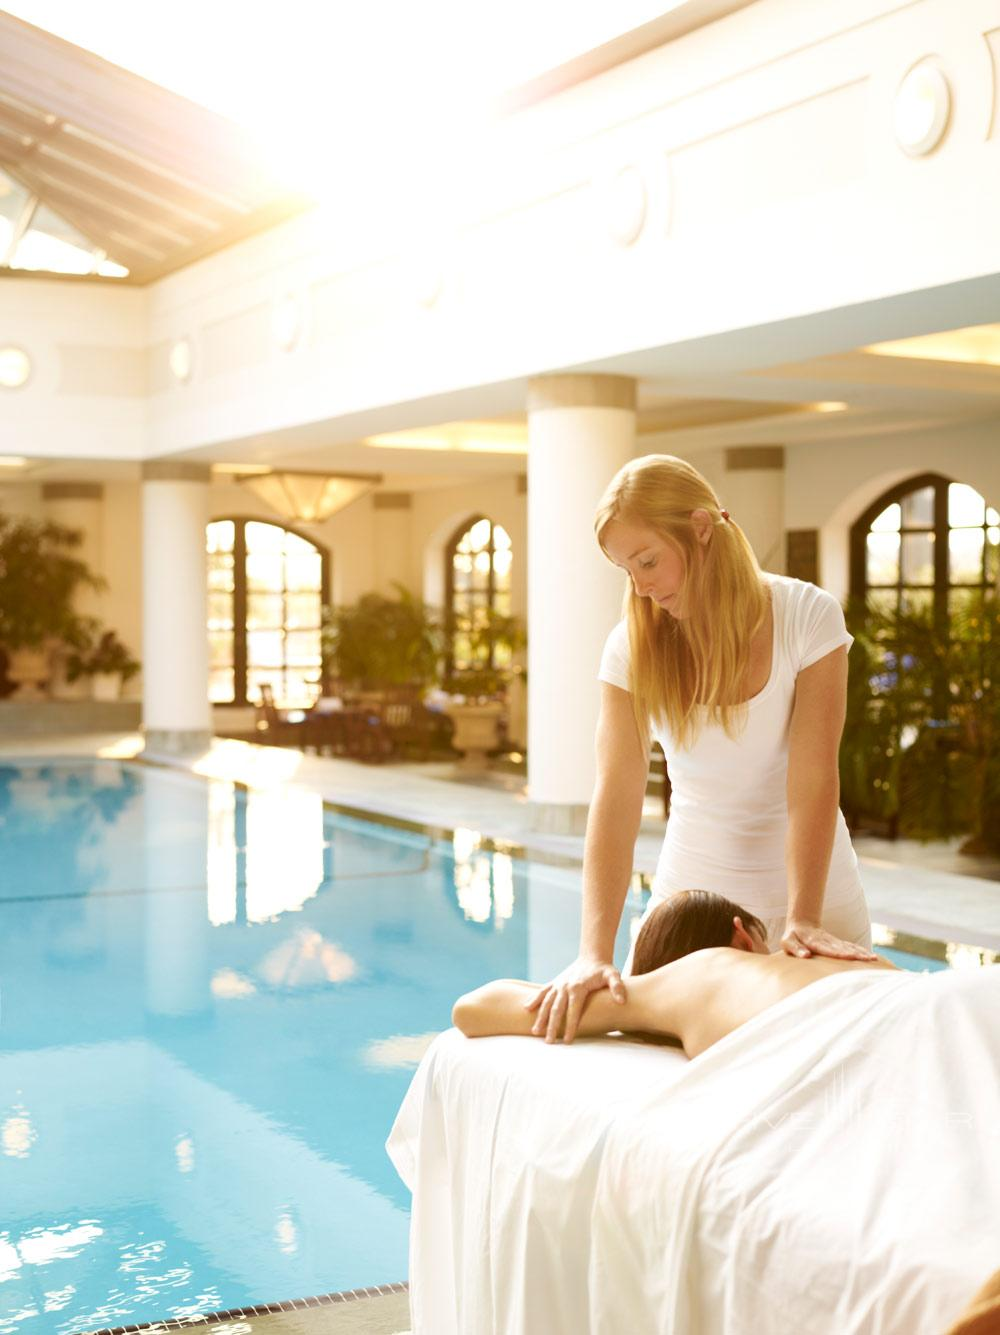 Poolside spa treatment at Belmond Charleston Place